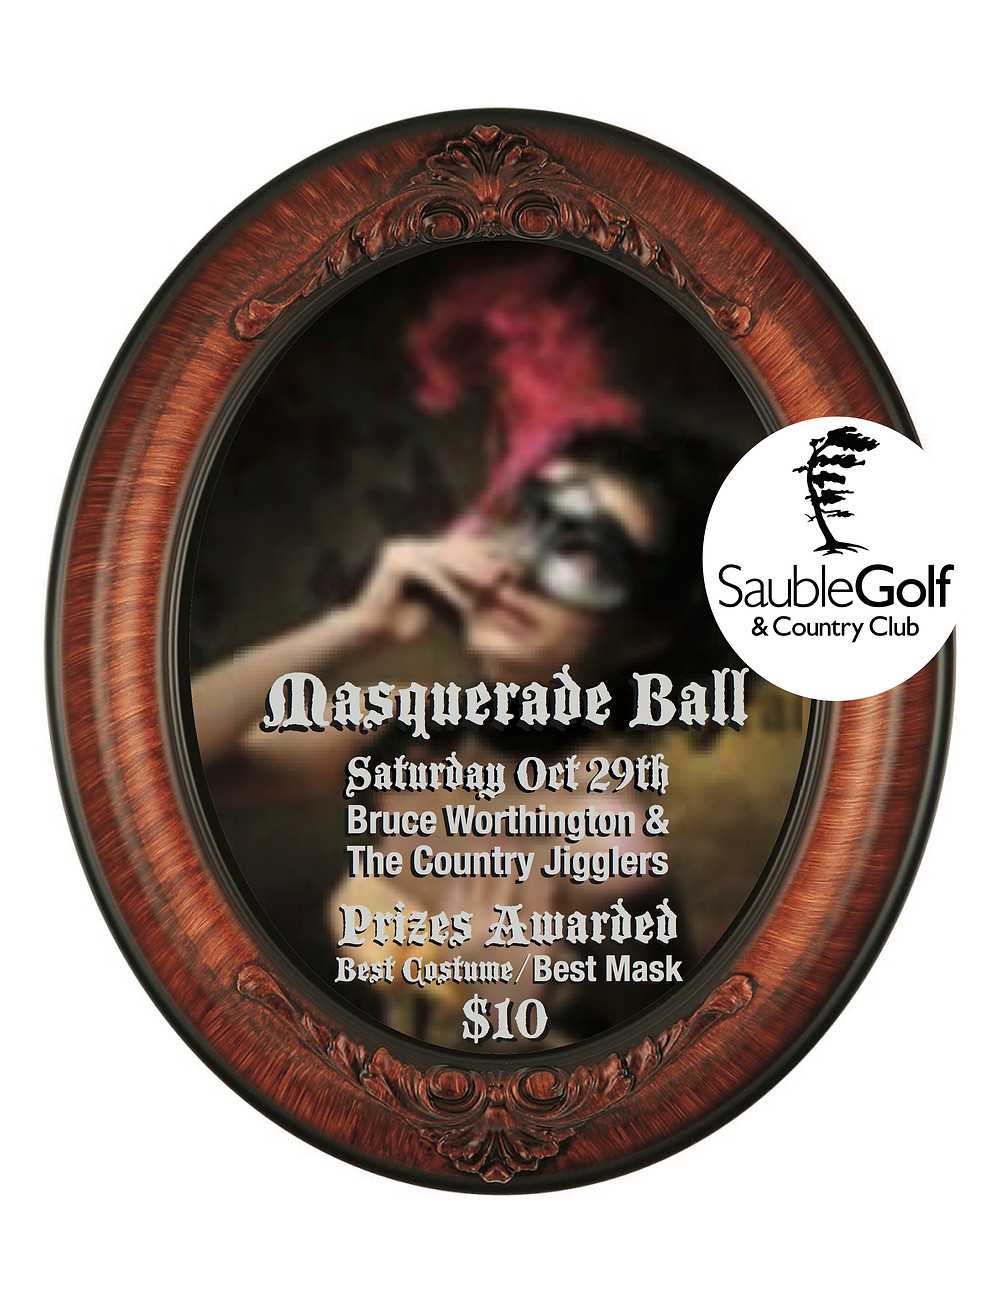 Saturday Night the mystery returns to Bogey's with our Annual Masquerade Ball, featuring Bruce Worthington & The Country Jigglers. Admission is just $10 and the band starts at 9pm. Bogey's opens for dinner at 4pm if you'd like to come and enjoy some of Chef Bob's famous Roast Beef or pick your favourite off menu.